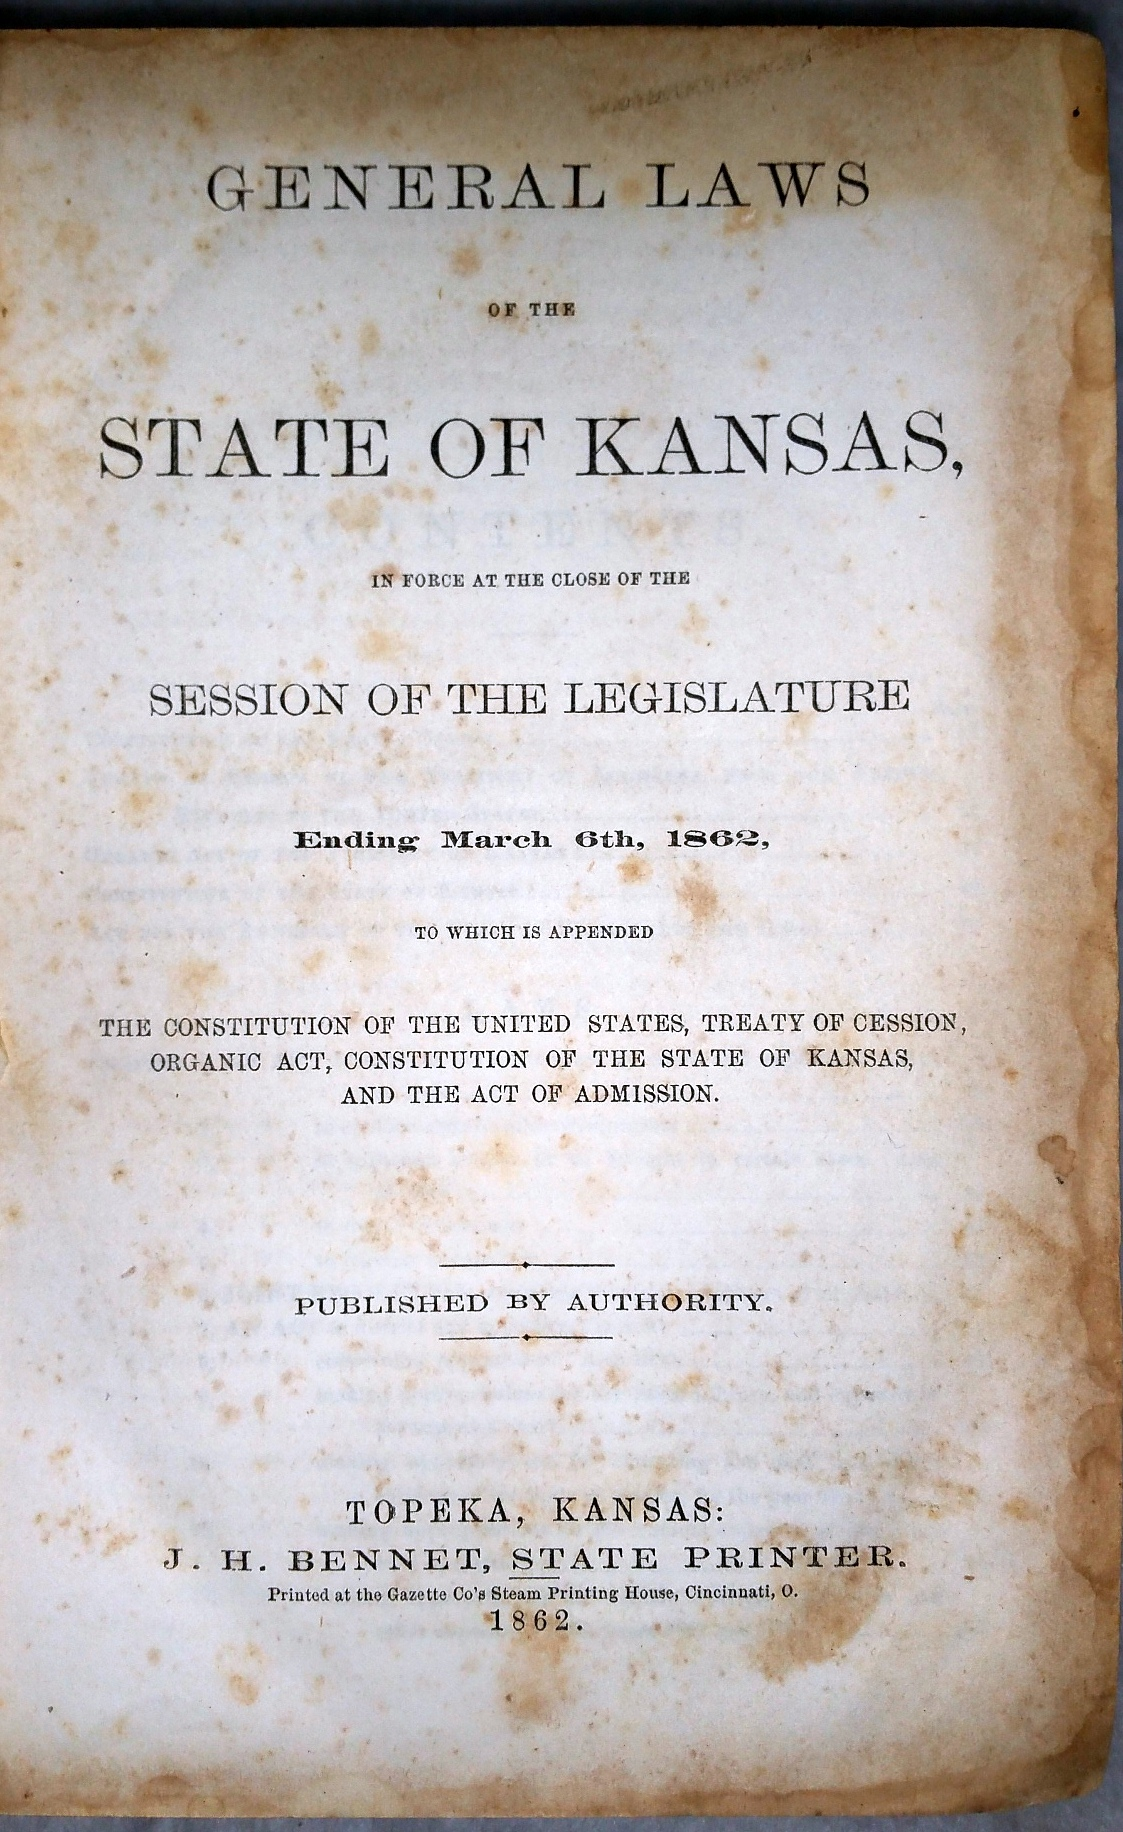 Image for General Laws of the State of Kansas in Force at the Close of the Session of the Legislature Ending March 6th, 1862, to which is Appended the Constitution... Treaty of Cession, Organic Act, Constitution of the State of Kansas, and the Act of Admission